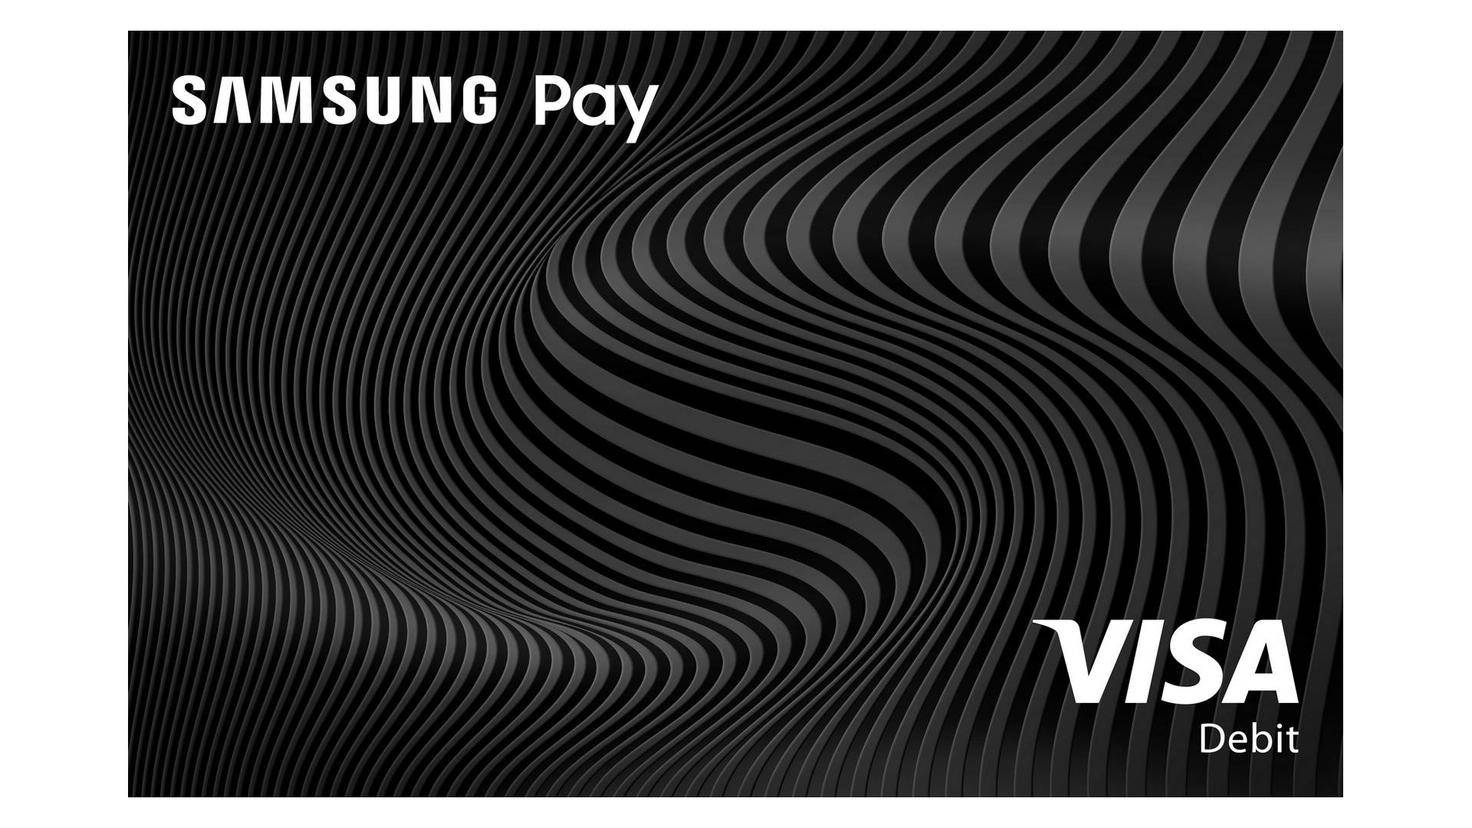 Samsung_Pay_Card_Visa_Debit_grau_RGB